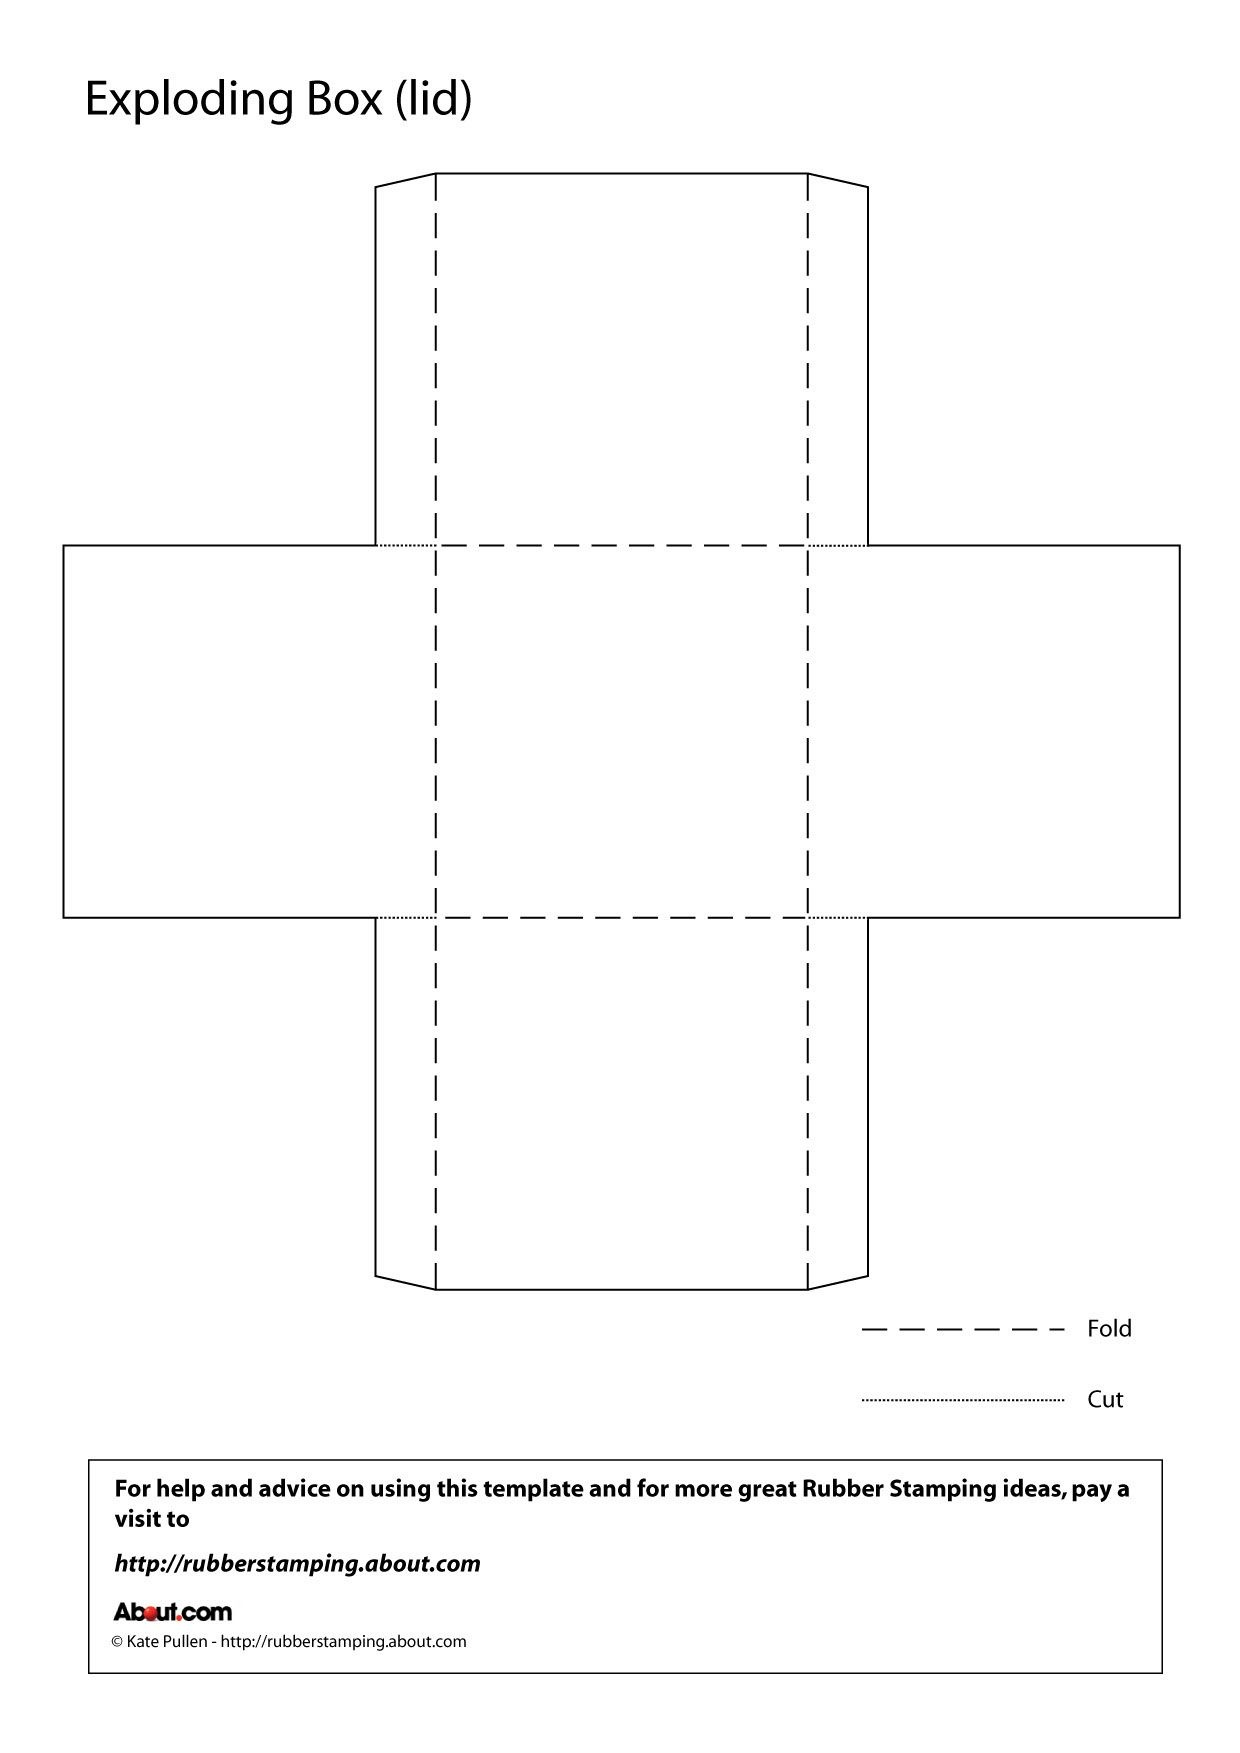 Make An Exploding Box With This Free Printable Template - Box Templates Free Printable